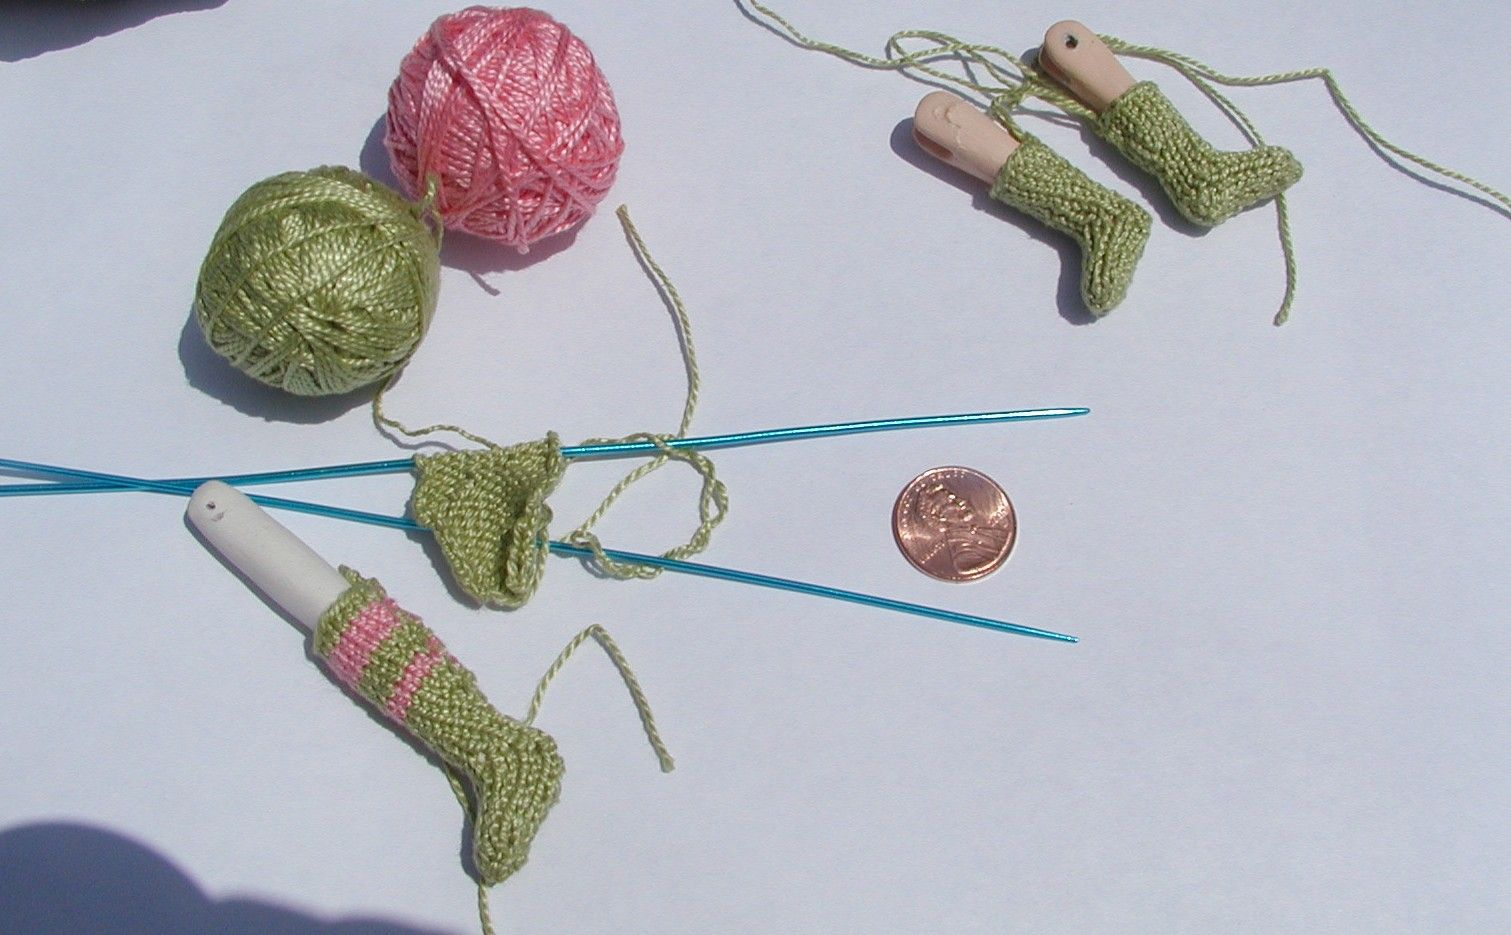 I did learn how to knit socks for my miniature (dollhouse) dolls... and they're my first attempt, so I'm really, really proud of them... I included a penny so you could see how small (and thus even cuter) they are <3